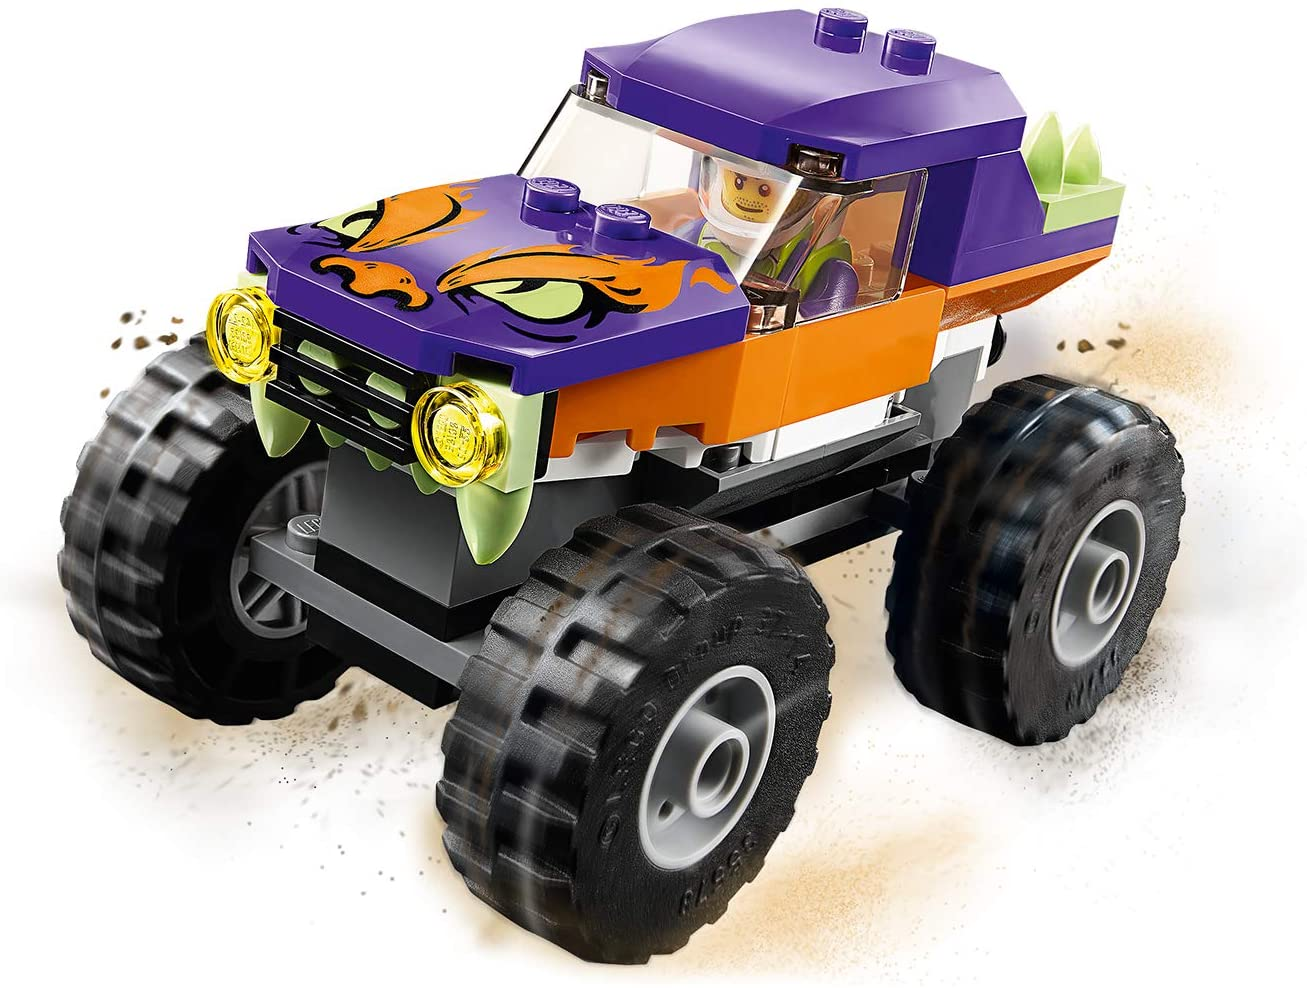 LEGO City Great Vehicles - Monster Truck